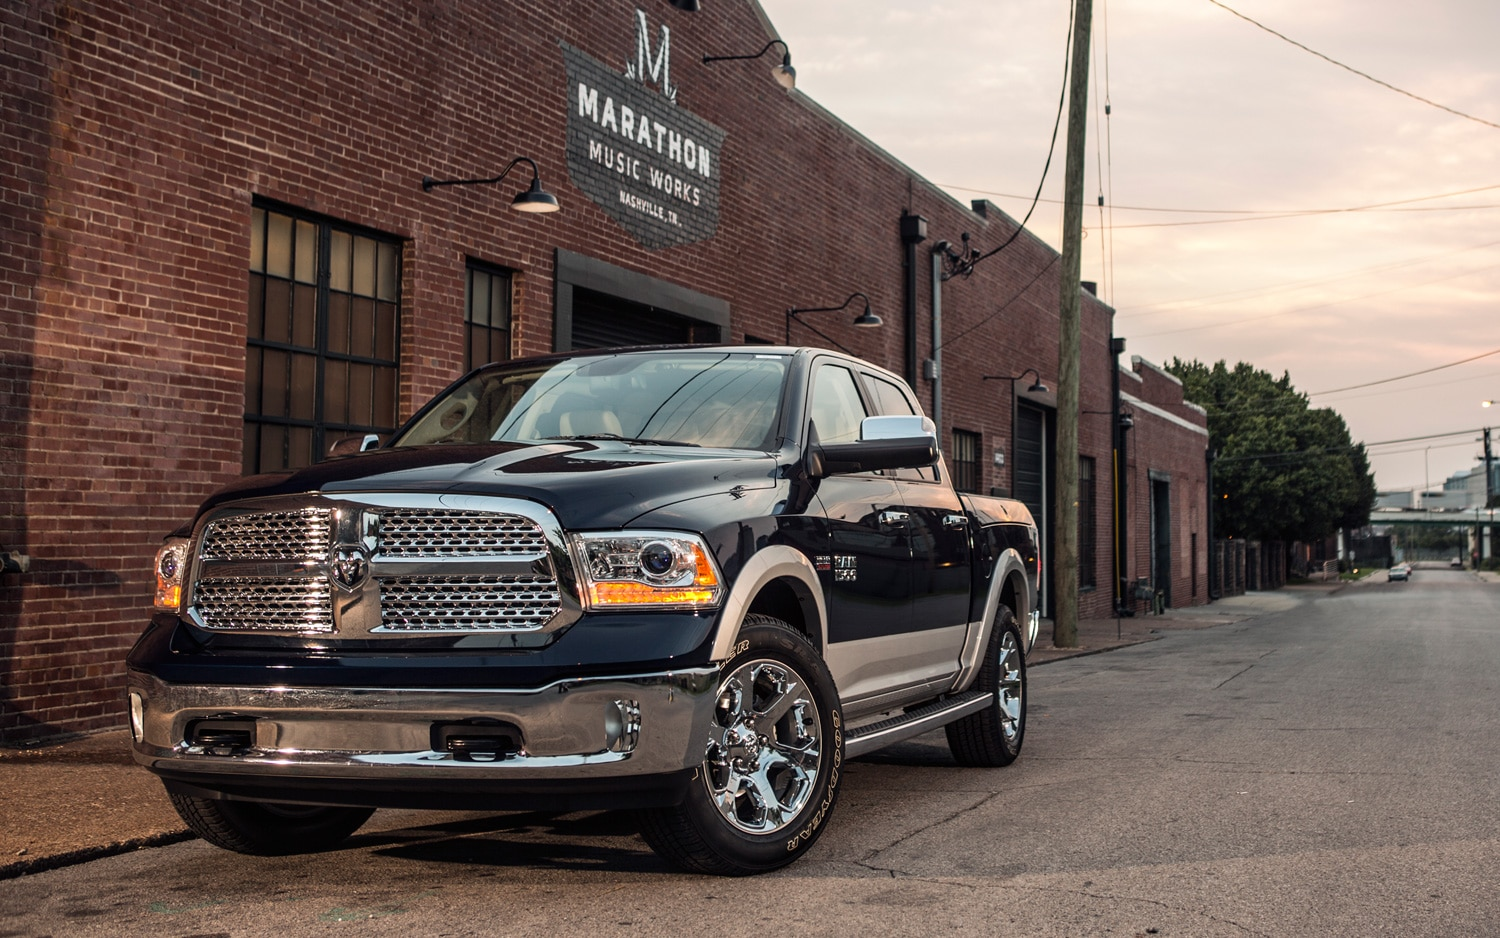 2013 Ram 1500 Front View11